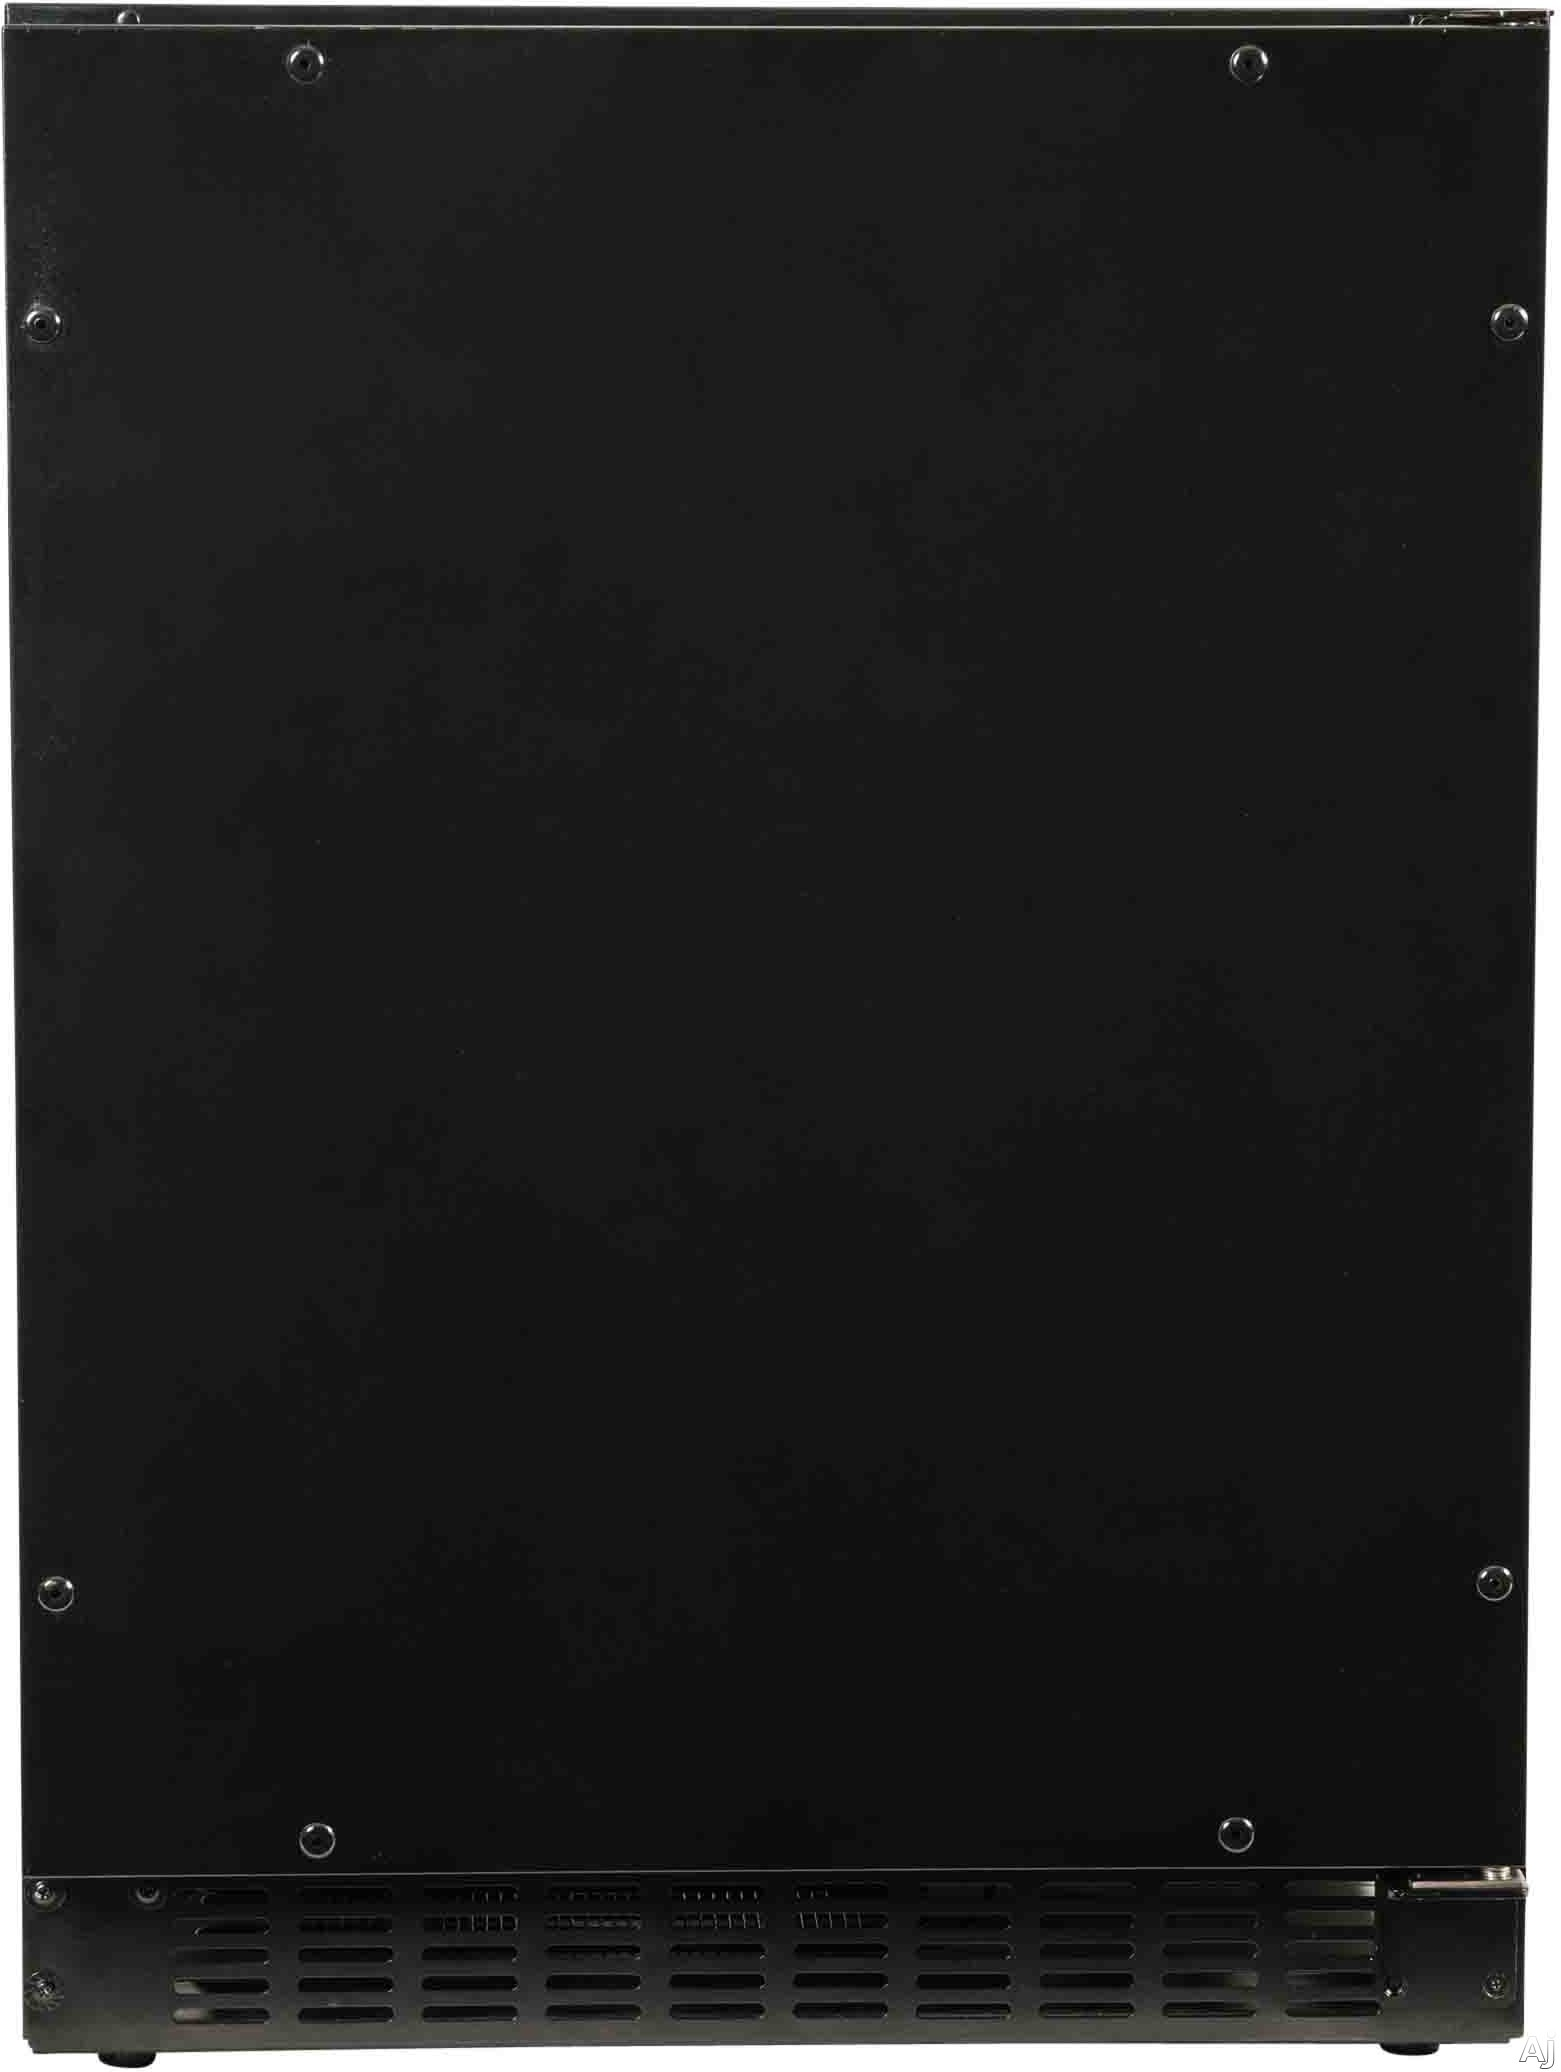 Azure A124ro 24 Inch Compact Refrigerator With Blue Led Lighting, Field Reversible Door, Auto Defrost, A.d.a. Compliant And 5.1 Cu. Ft. Capacity:panel Ready-glass